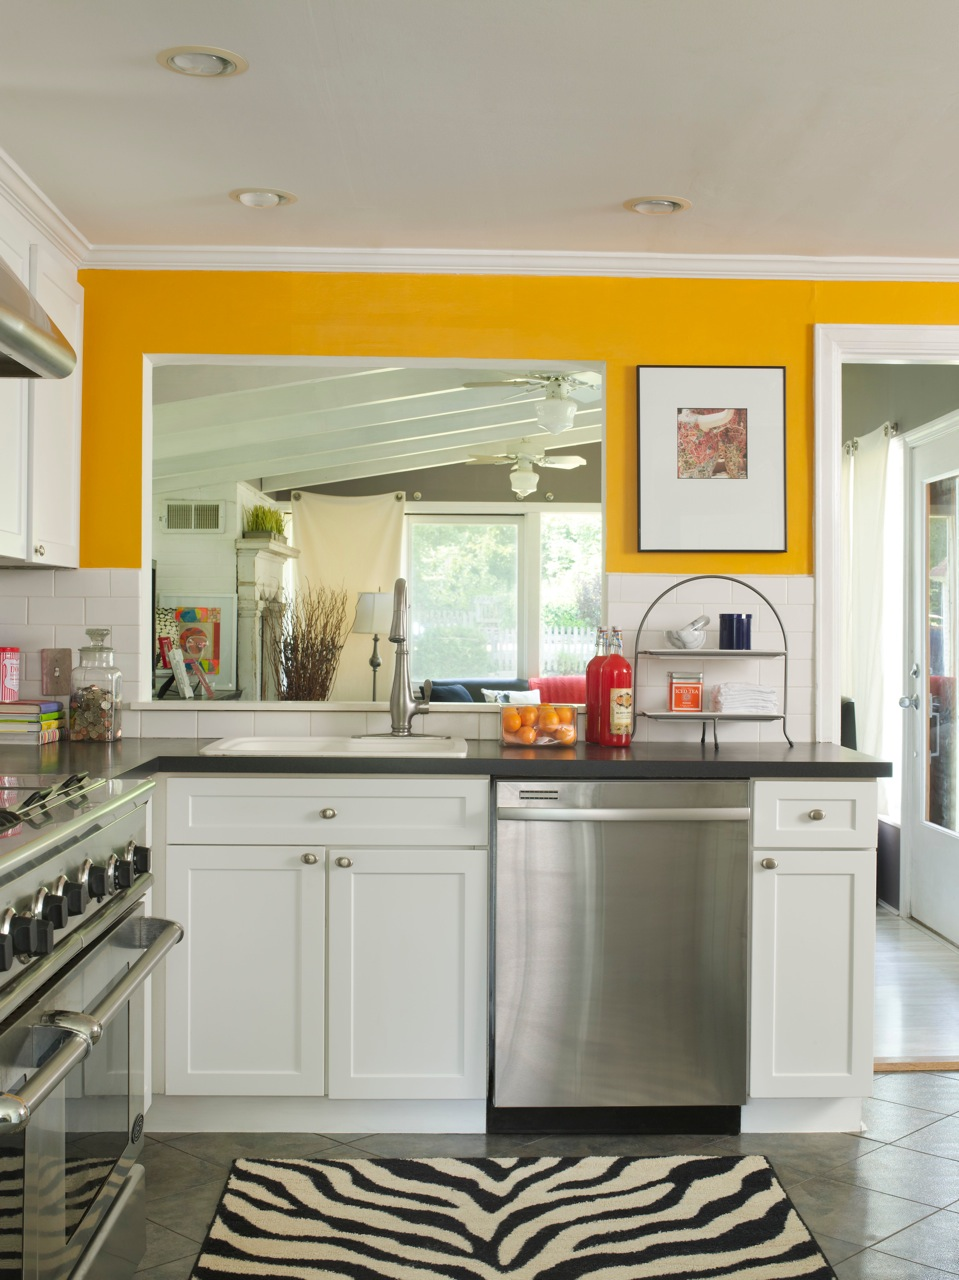 Kitchen color ideas yellow - Images of kitchen paint colors ...